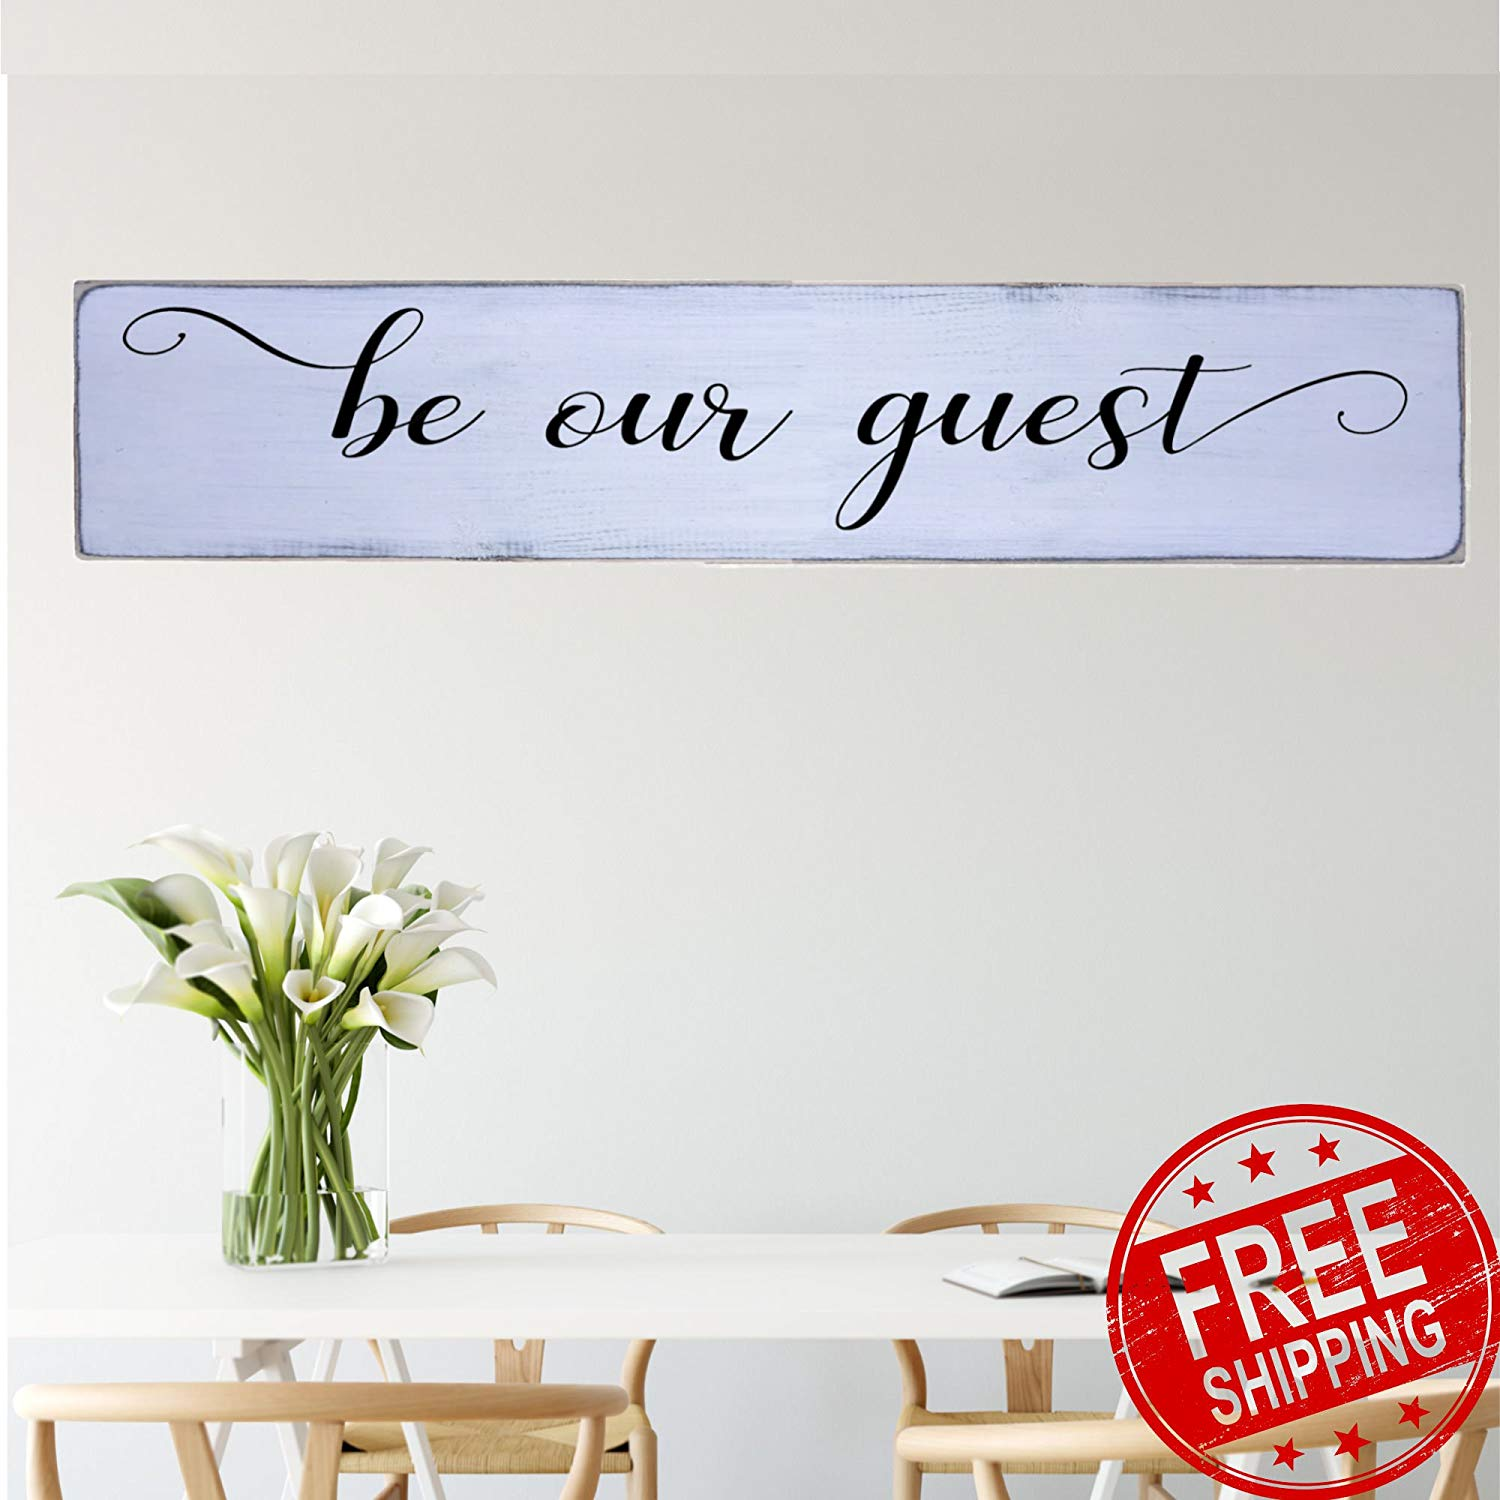 Be Our Guest Handmade Farmhouse Style Wall Art Wood Sign Large 10 in x 48 in Housewarming Gift Wall Decor